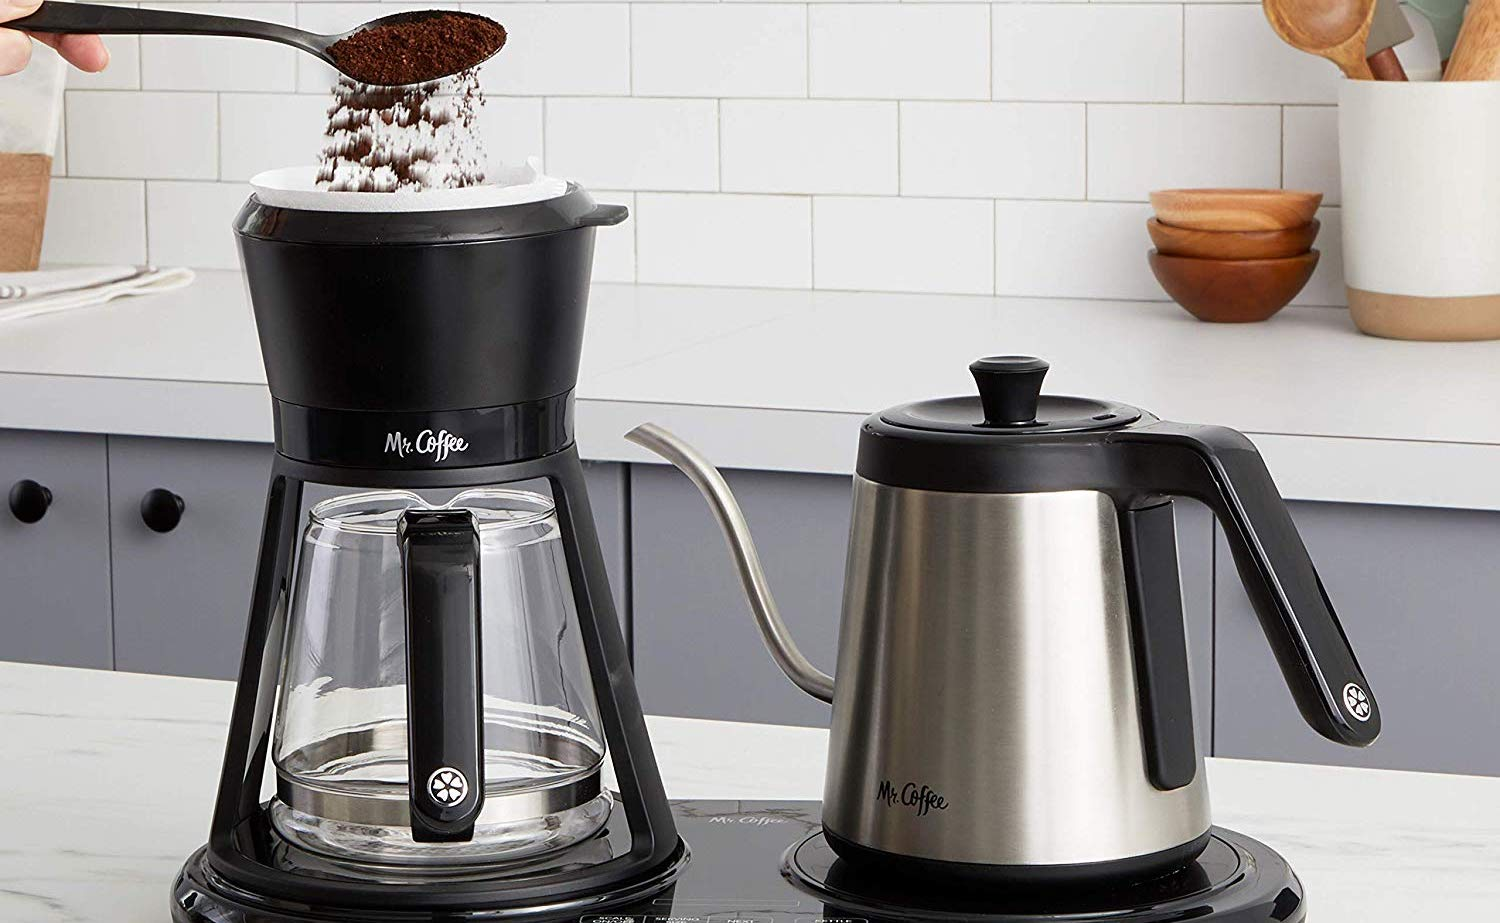 Mr. Coffee BVMC-PO19B Pour Over Coffee Maker helps you make high-quality coffee at home